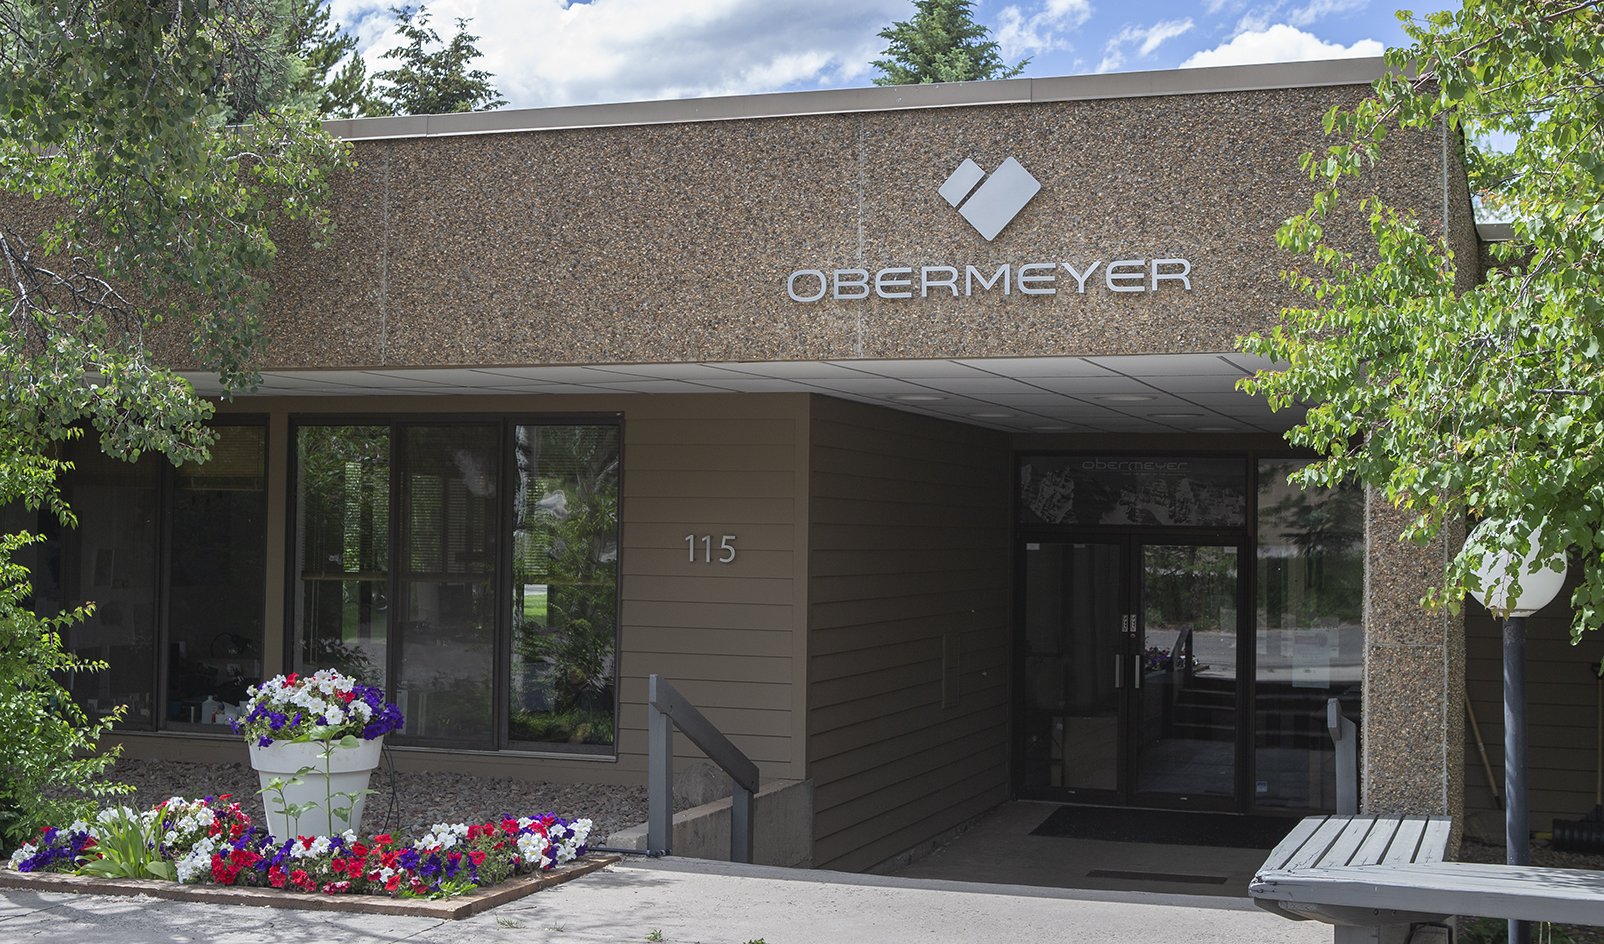 Obermeyer's Aspen home office